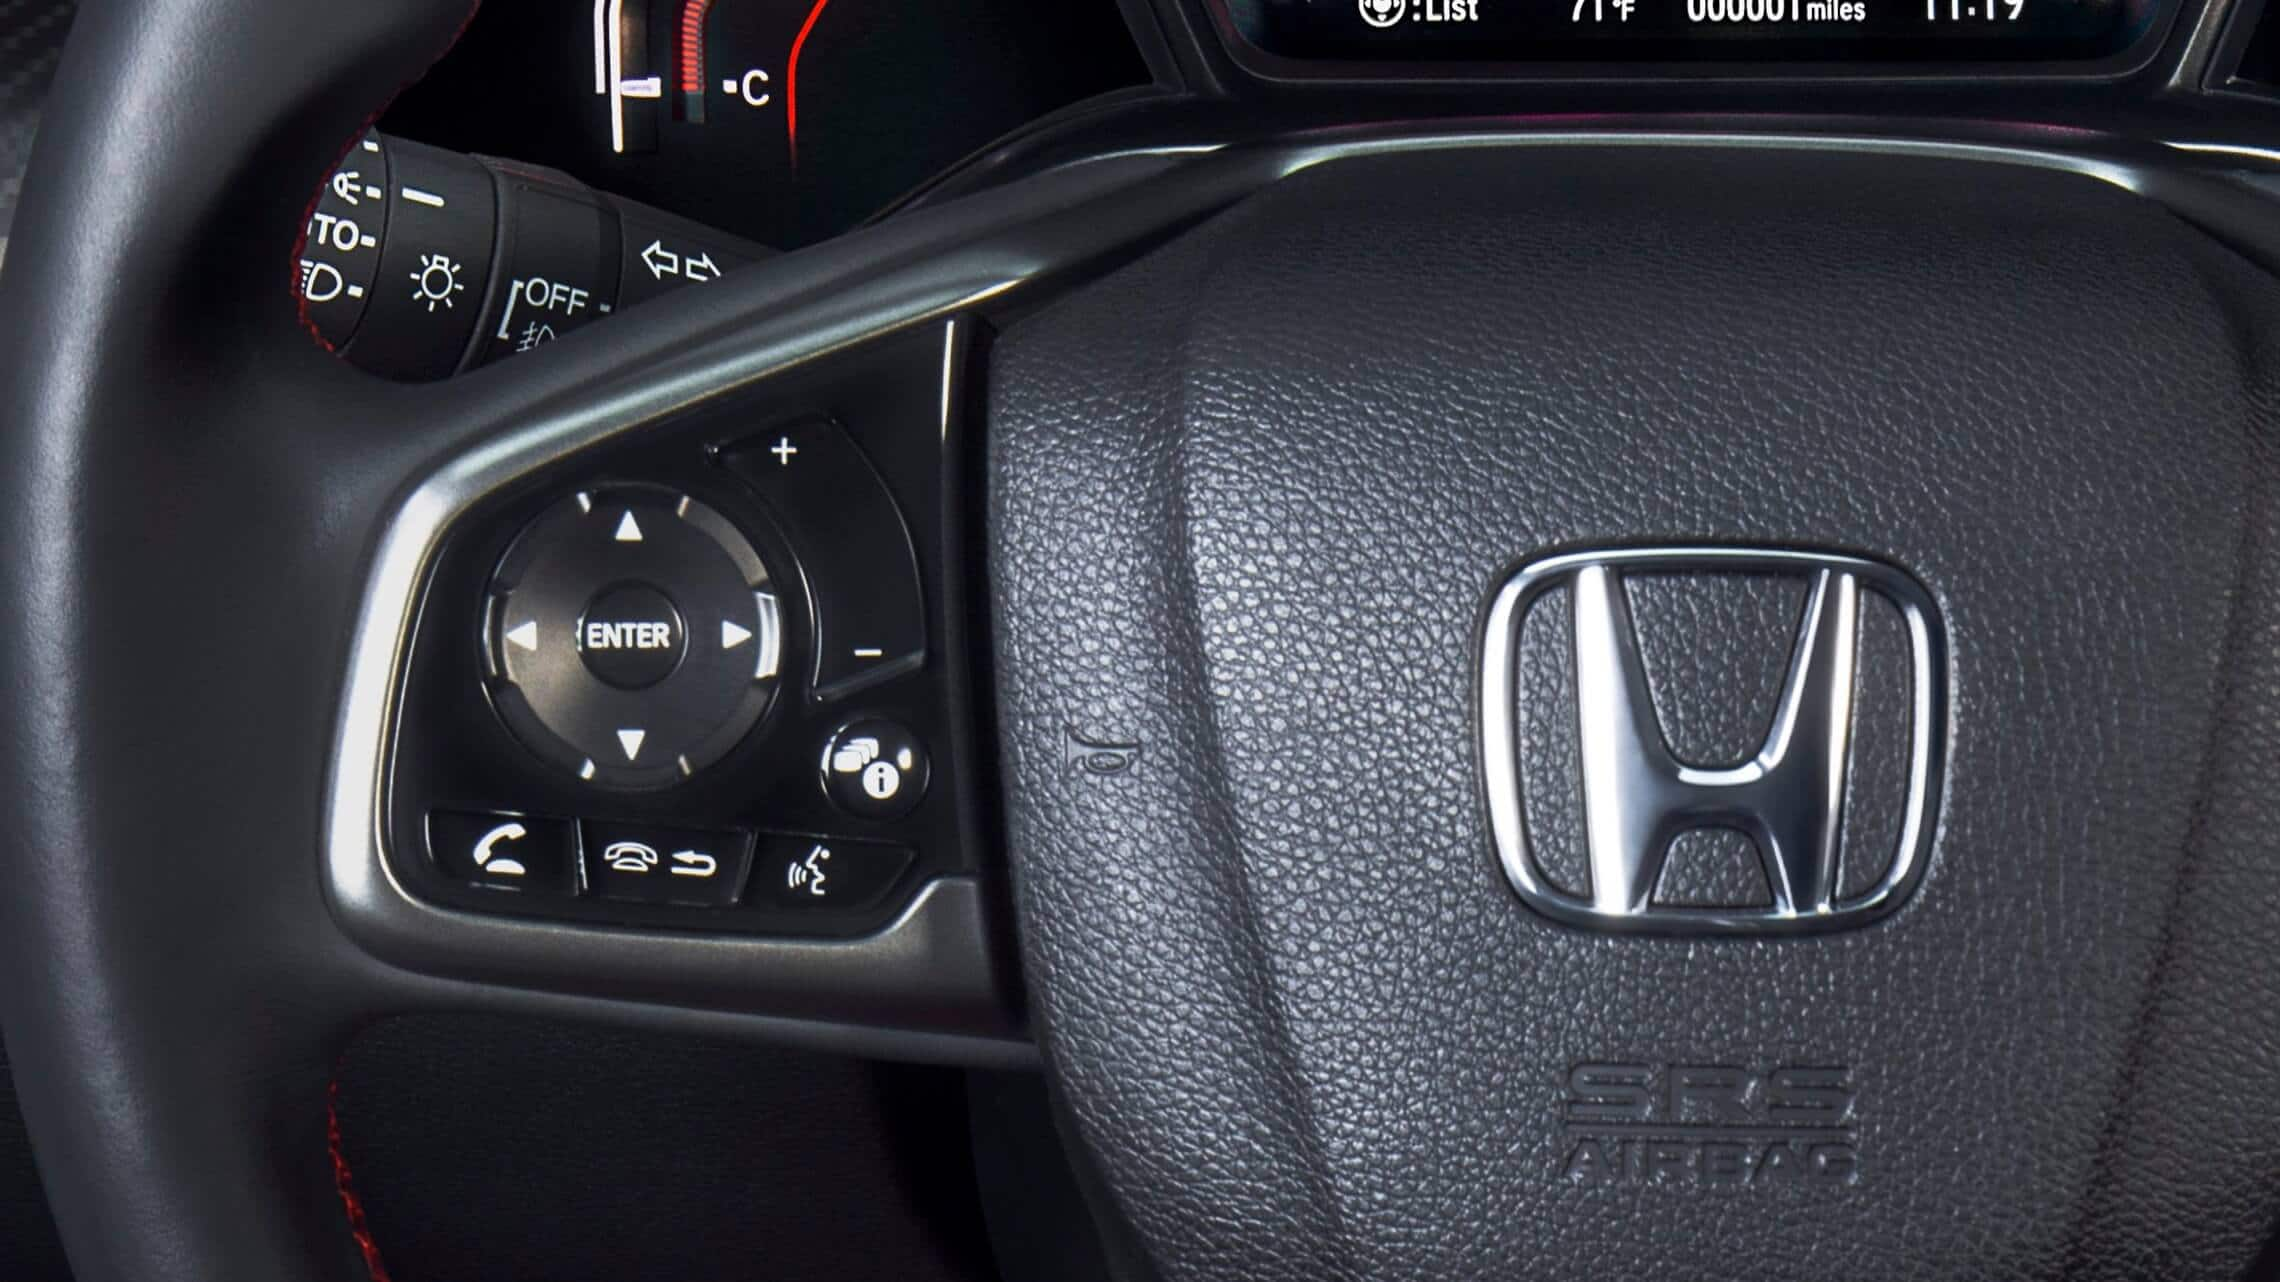 Illuminated steering wheel-mounted controls detail on 2020 Honda Civic Si Coupe.